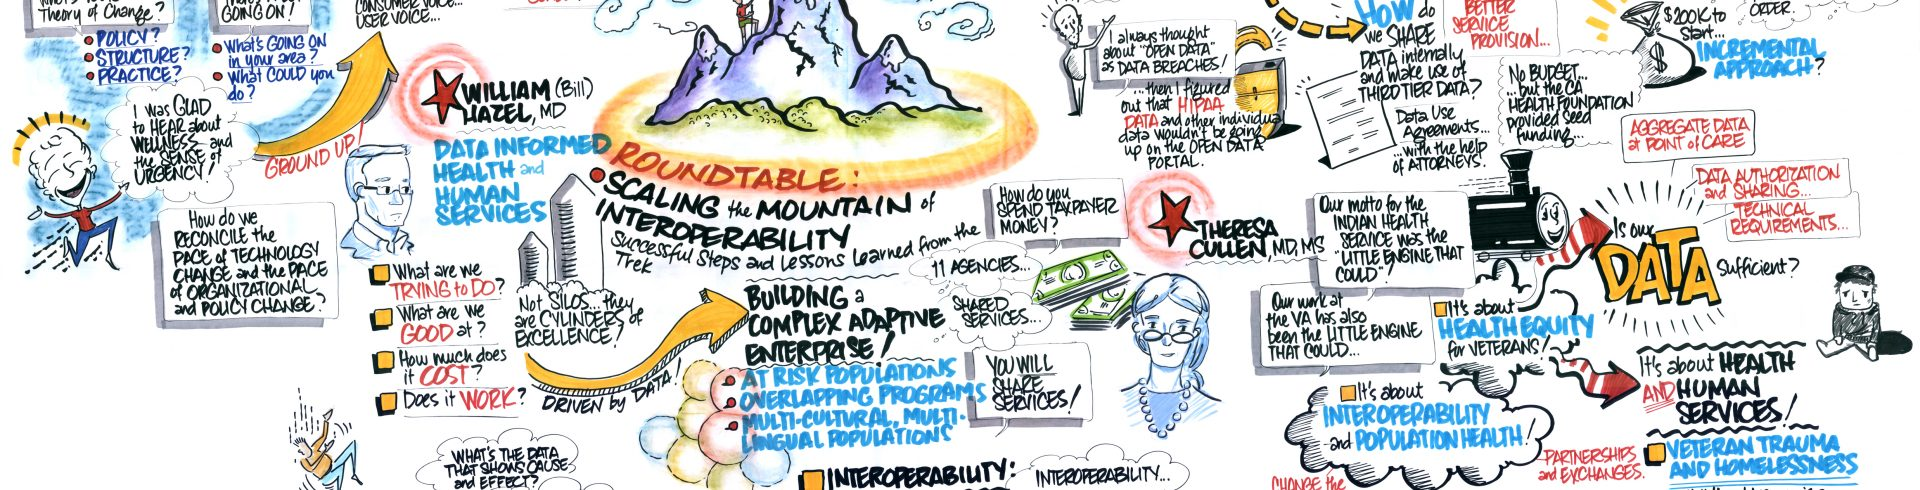 SOCI2015 – Day Two – Scaling the Mountain of Interoperability